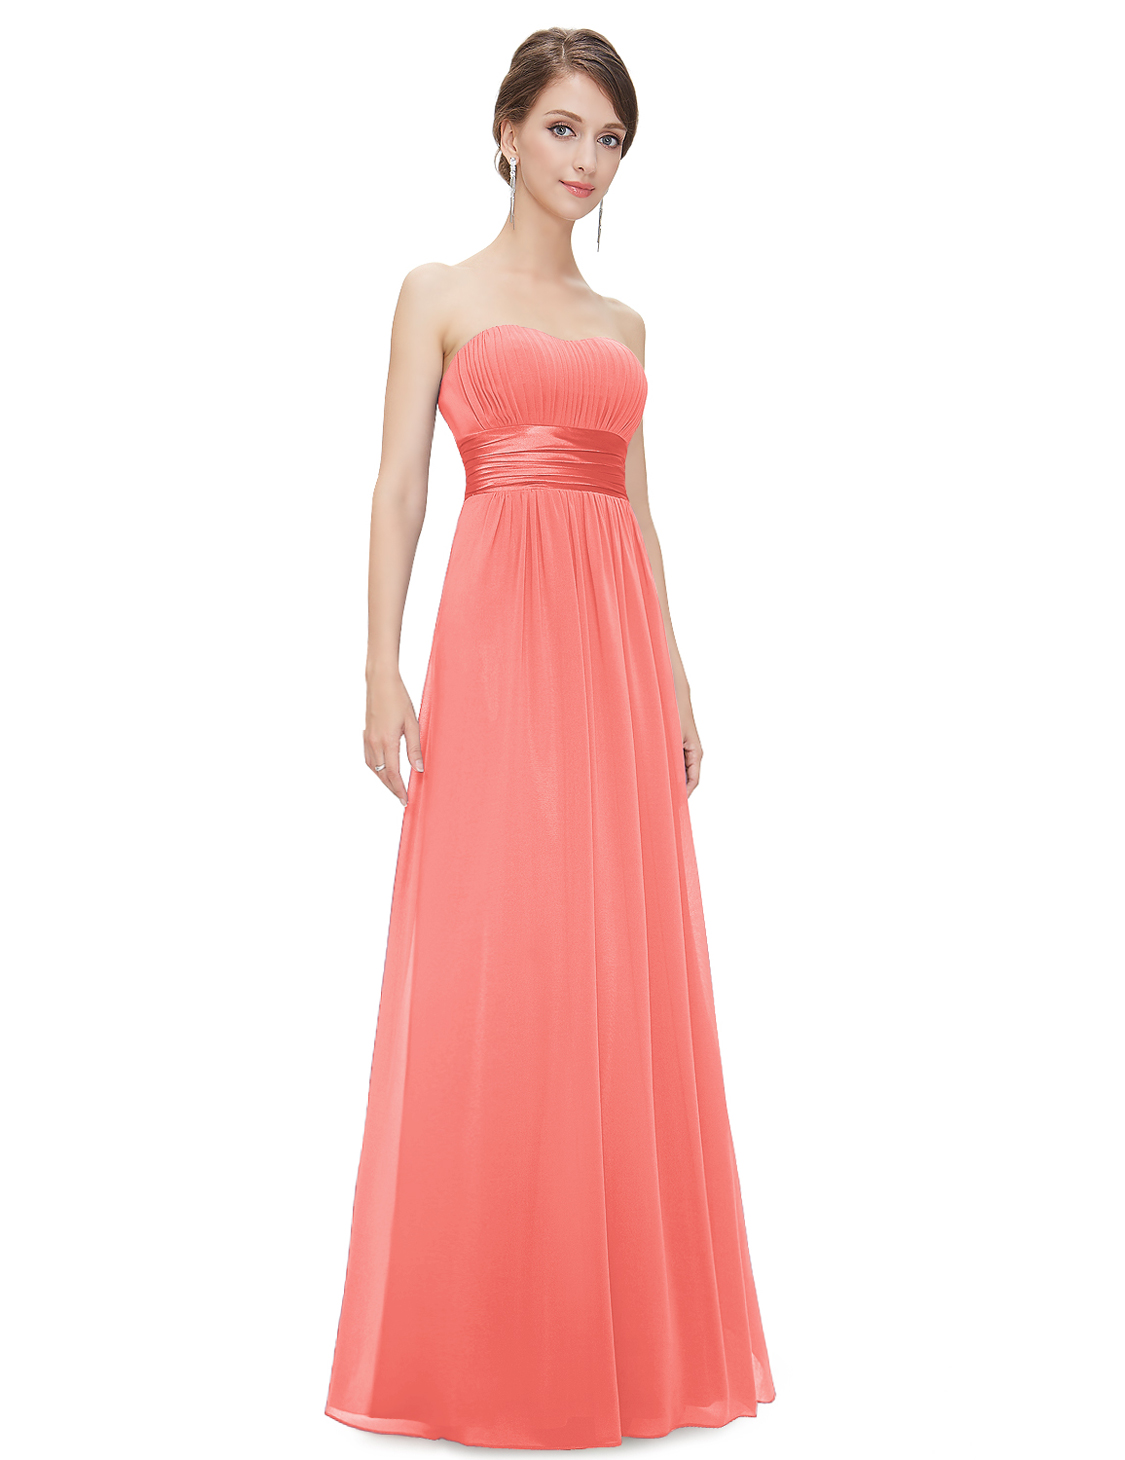 Strapless wedding ball long bridesmaid dress ball party for Pretty dress for wedding